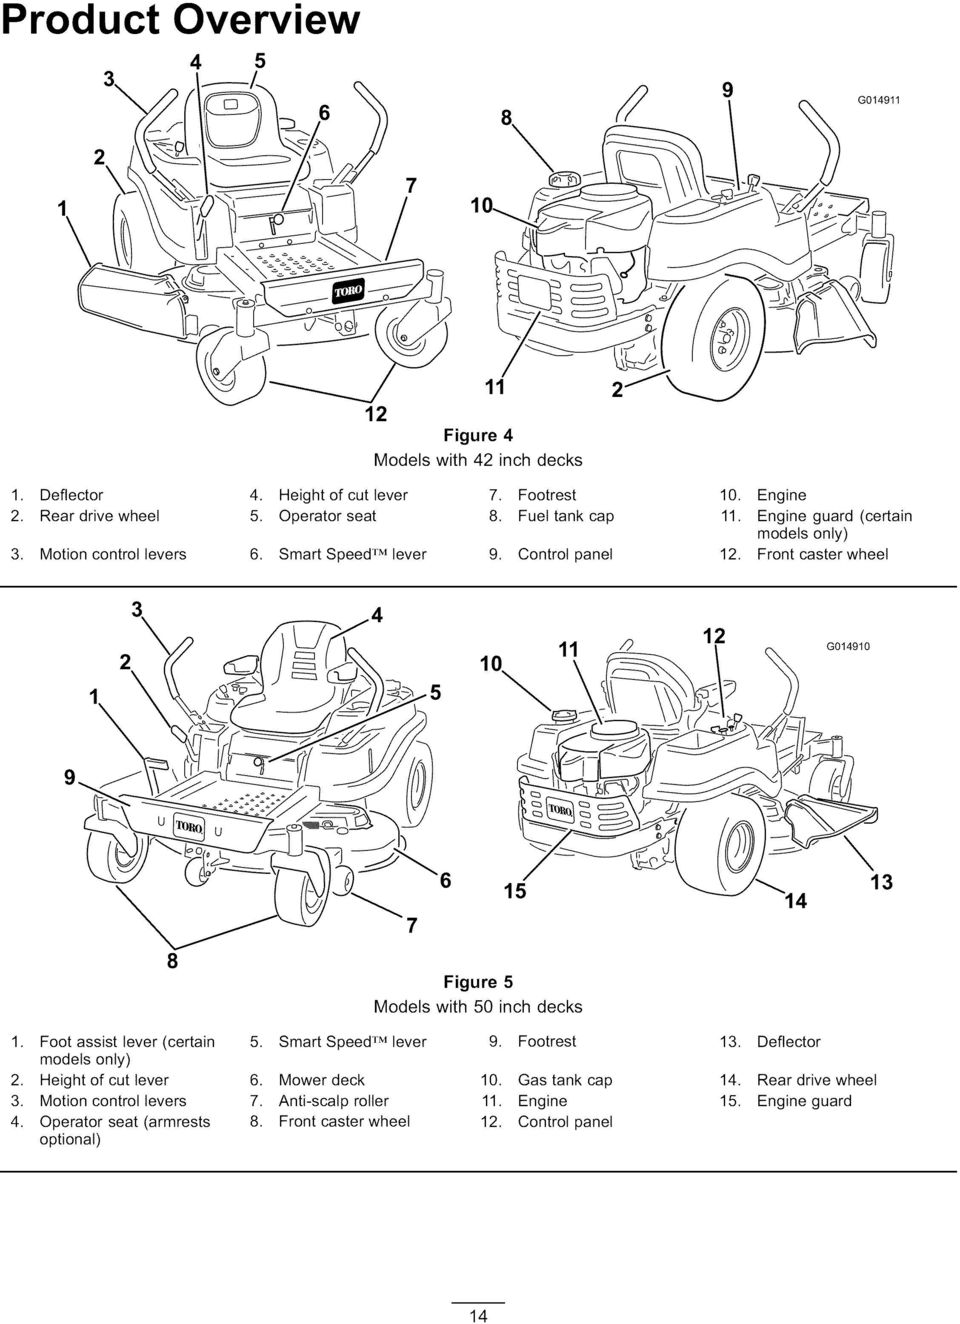 5000 And Ss 5060 Riding Mowers Pdf Toro Timecutter Wiring Diagram 14 13 8 Figure 5 Models With 50 Inch Decks 1 Foot